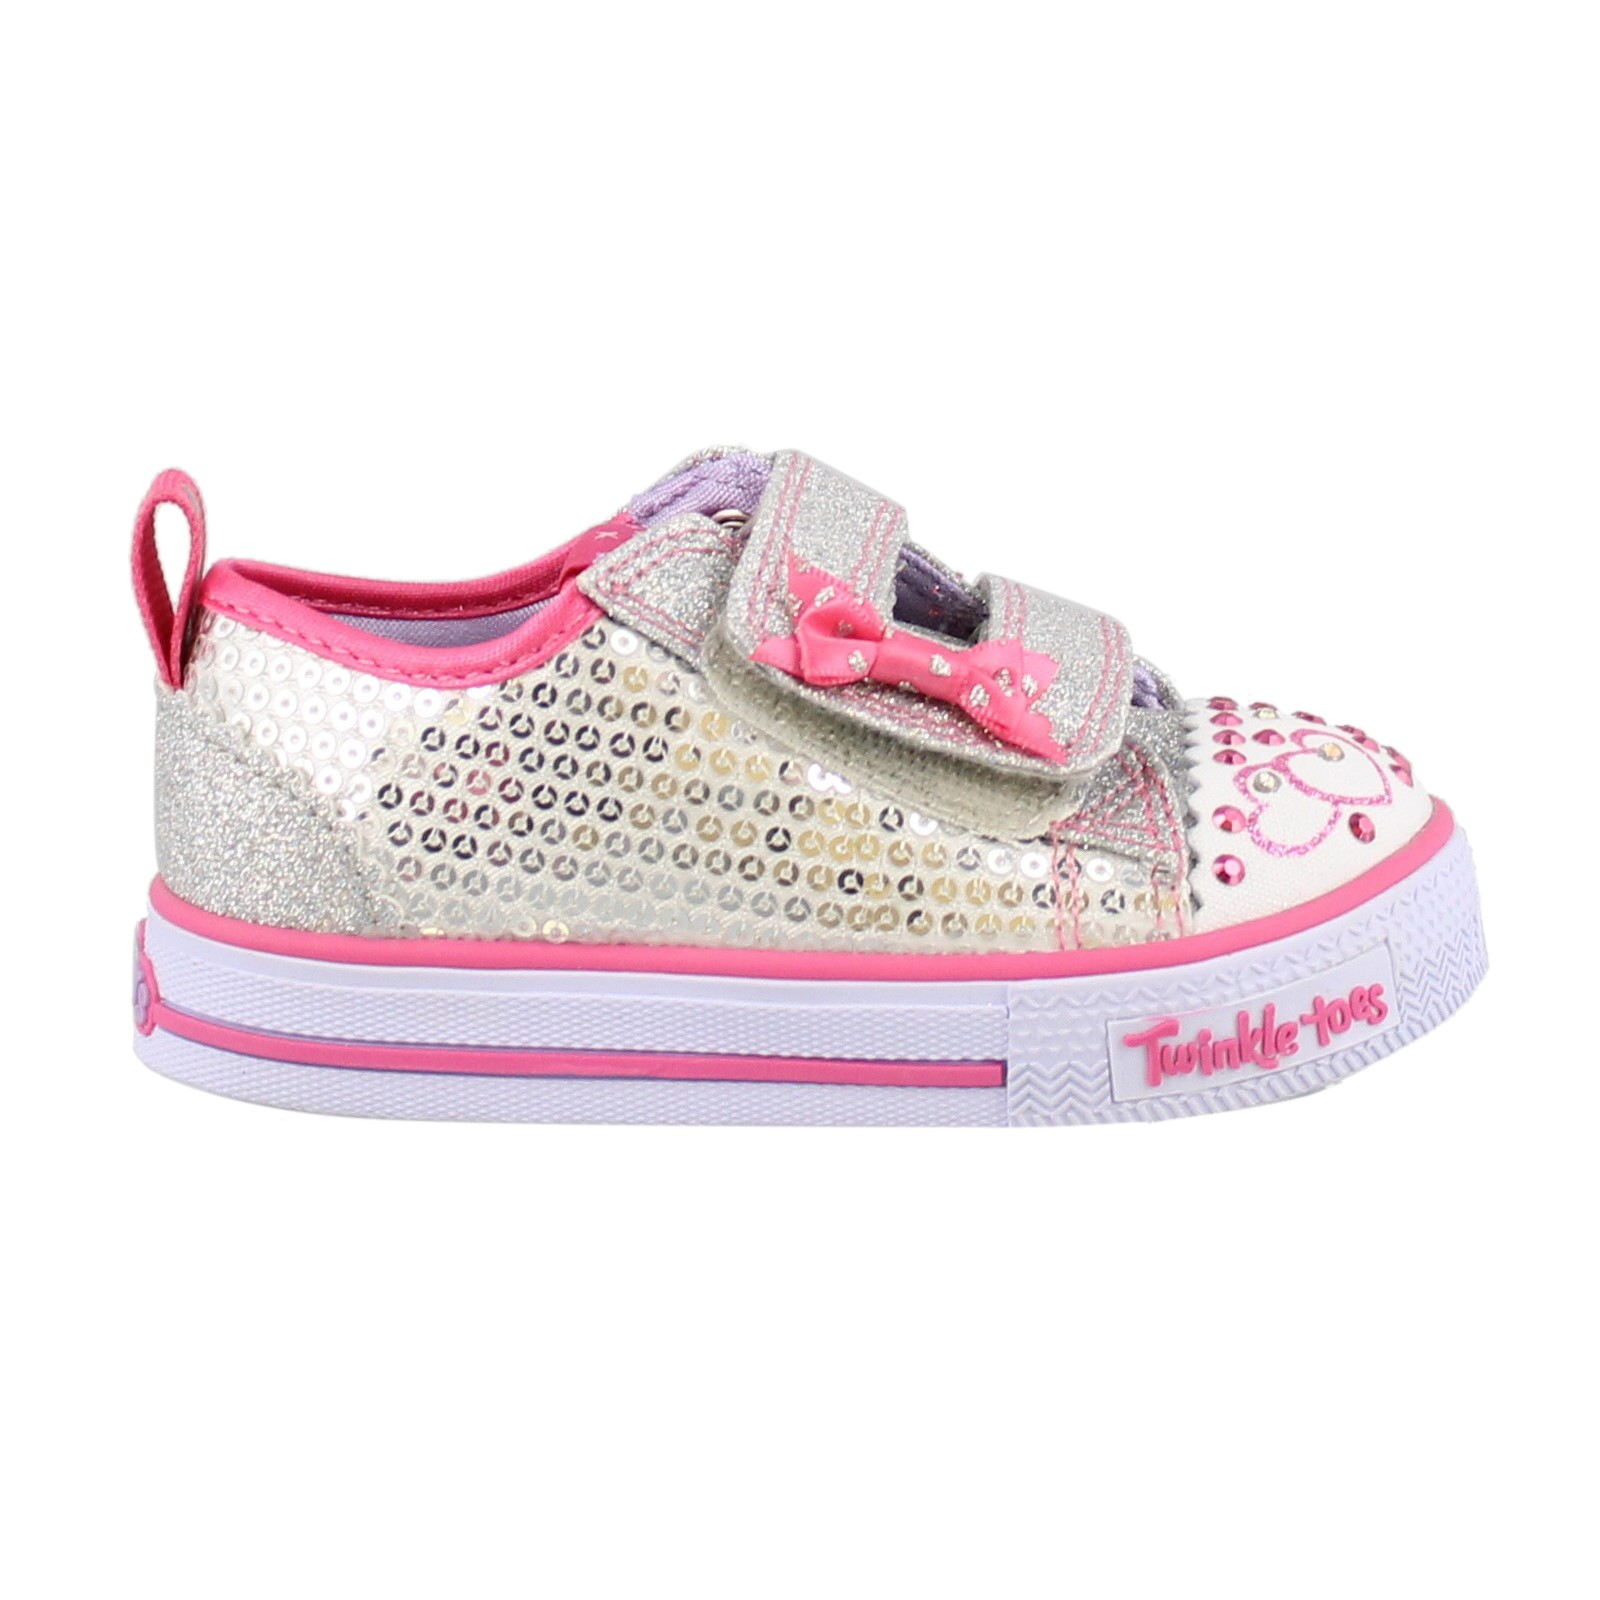 Girl's Skechers, S Lights Shuffles Itsy Bitsy Slip on Sneakers